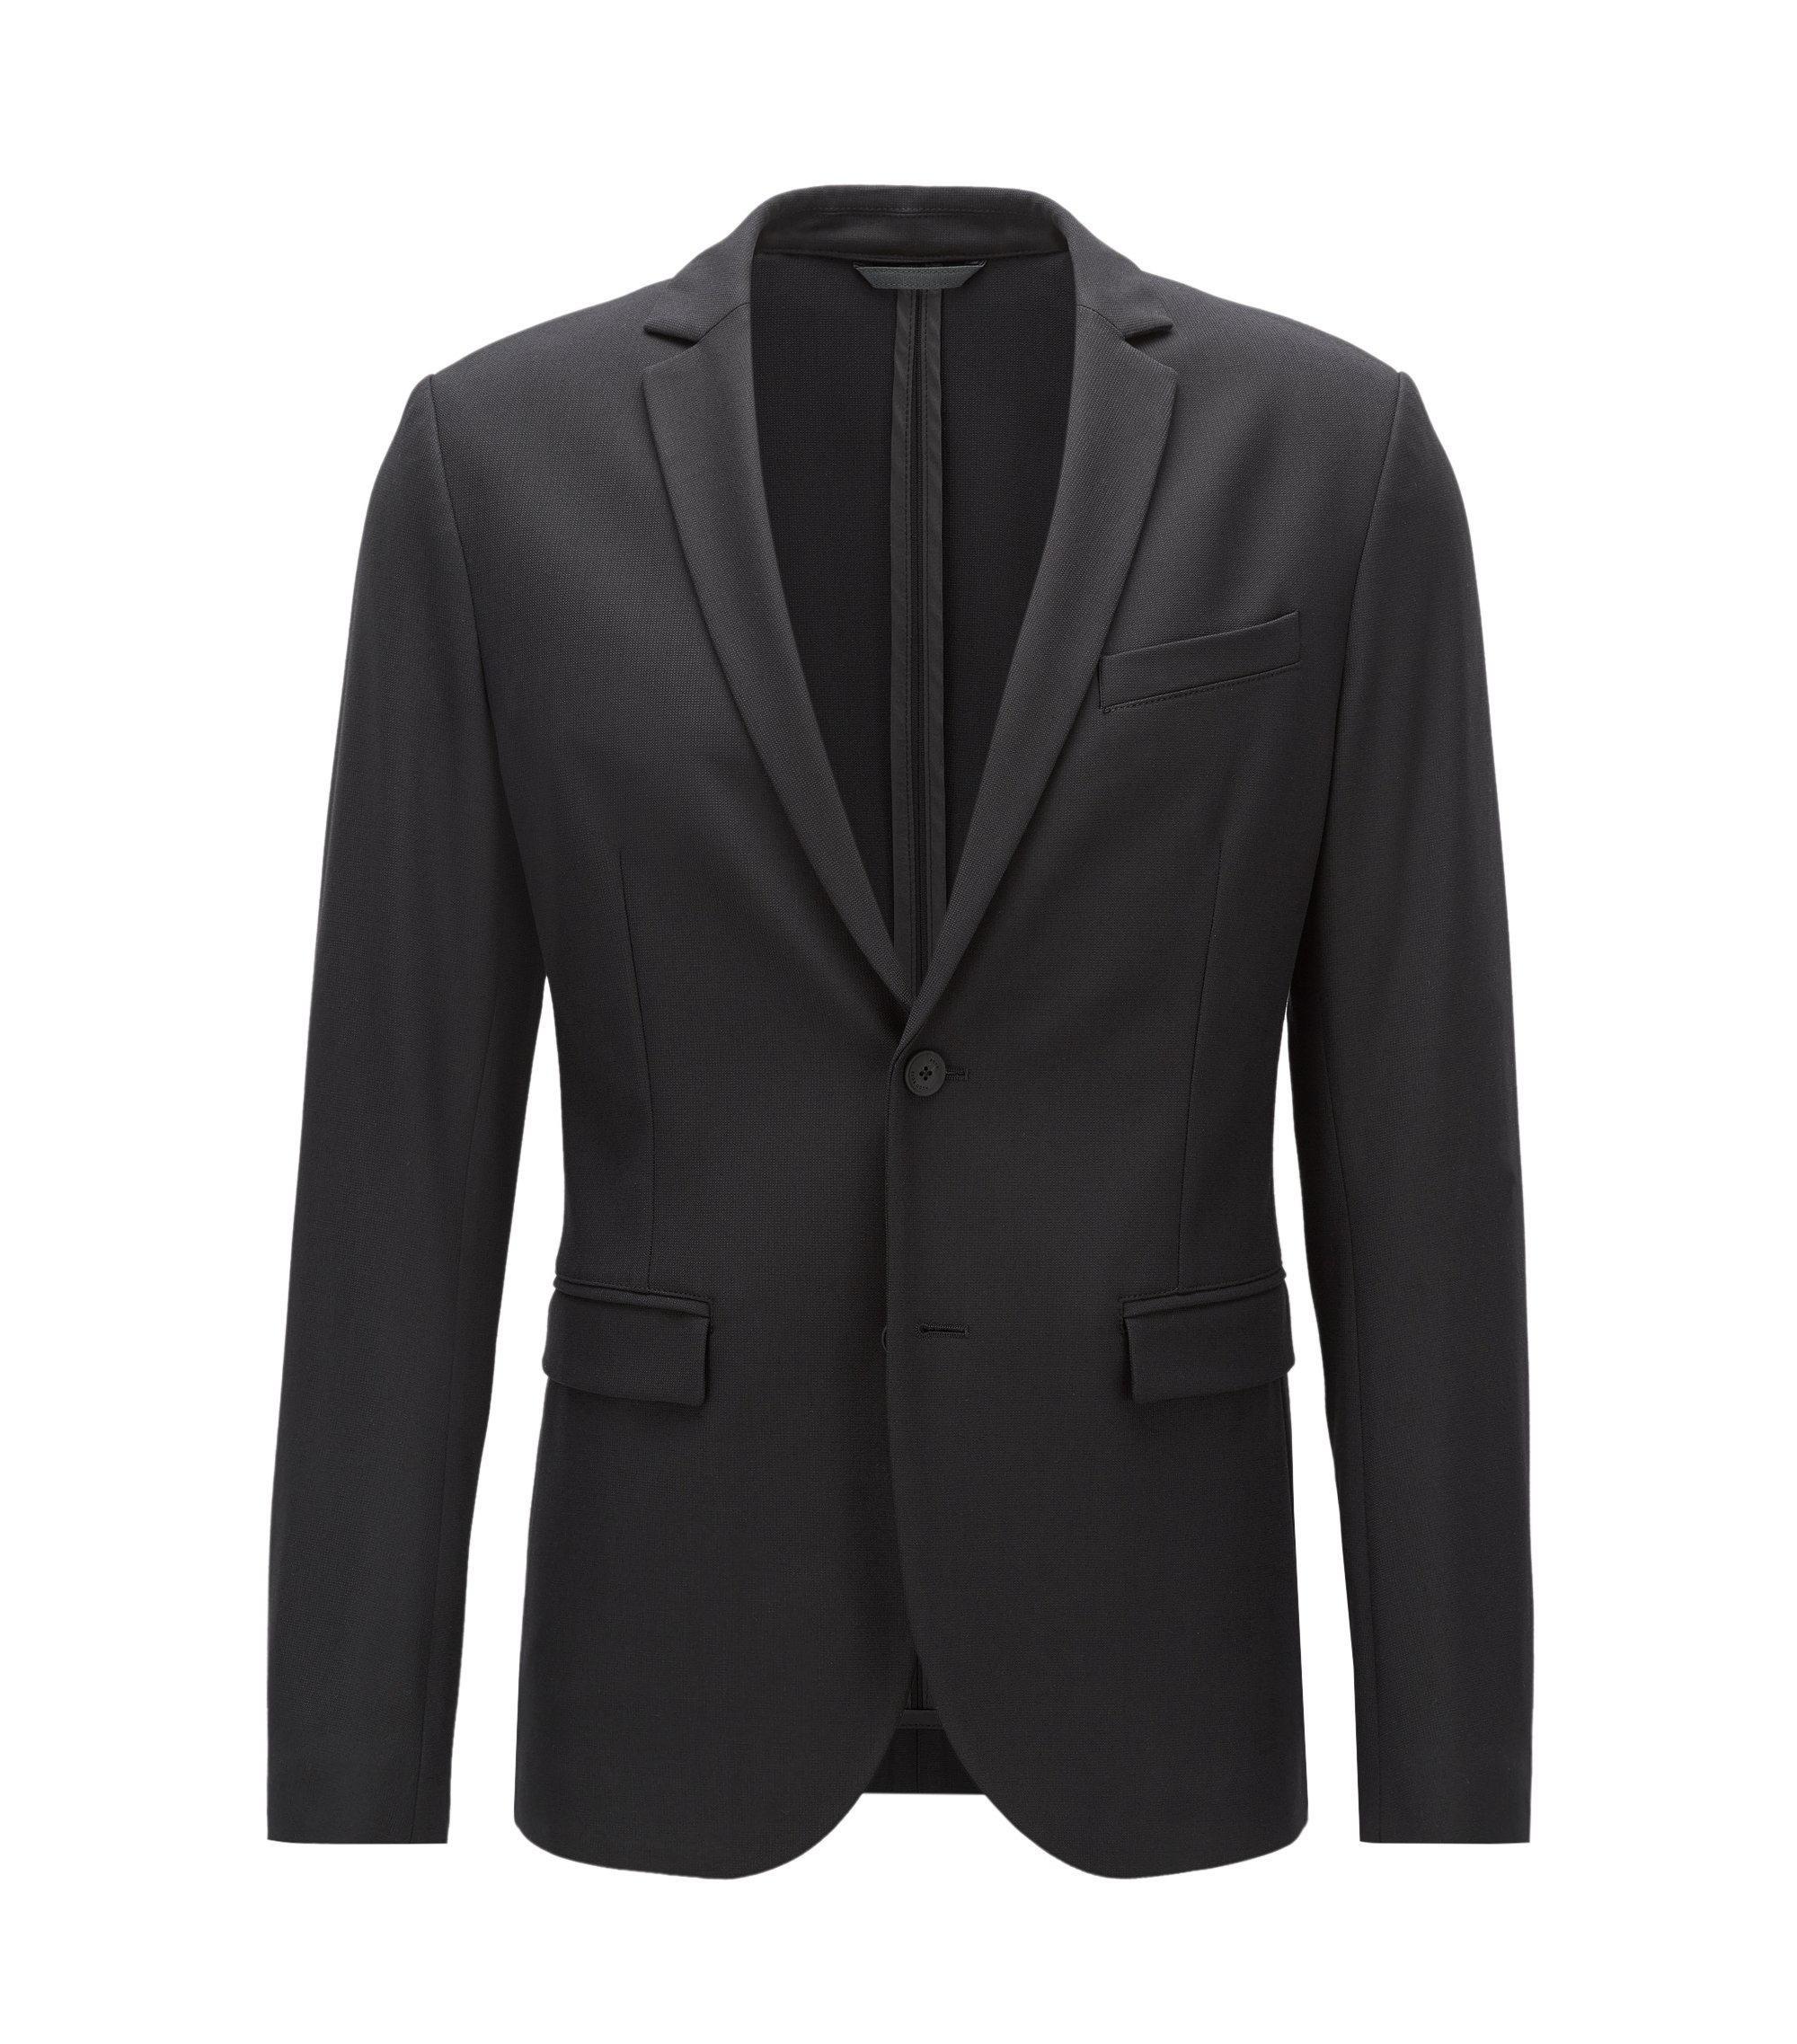 Stretch Sport Coat, Slim Fit | Amono, Black